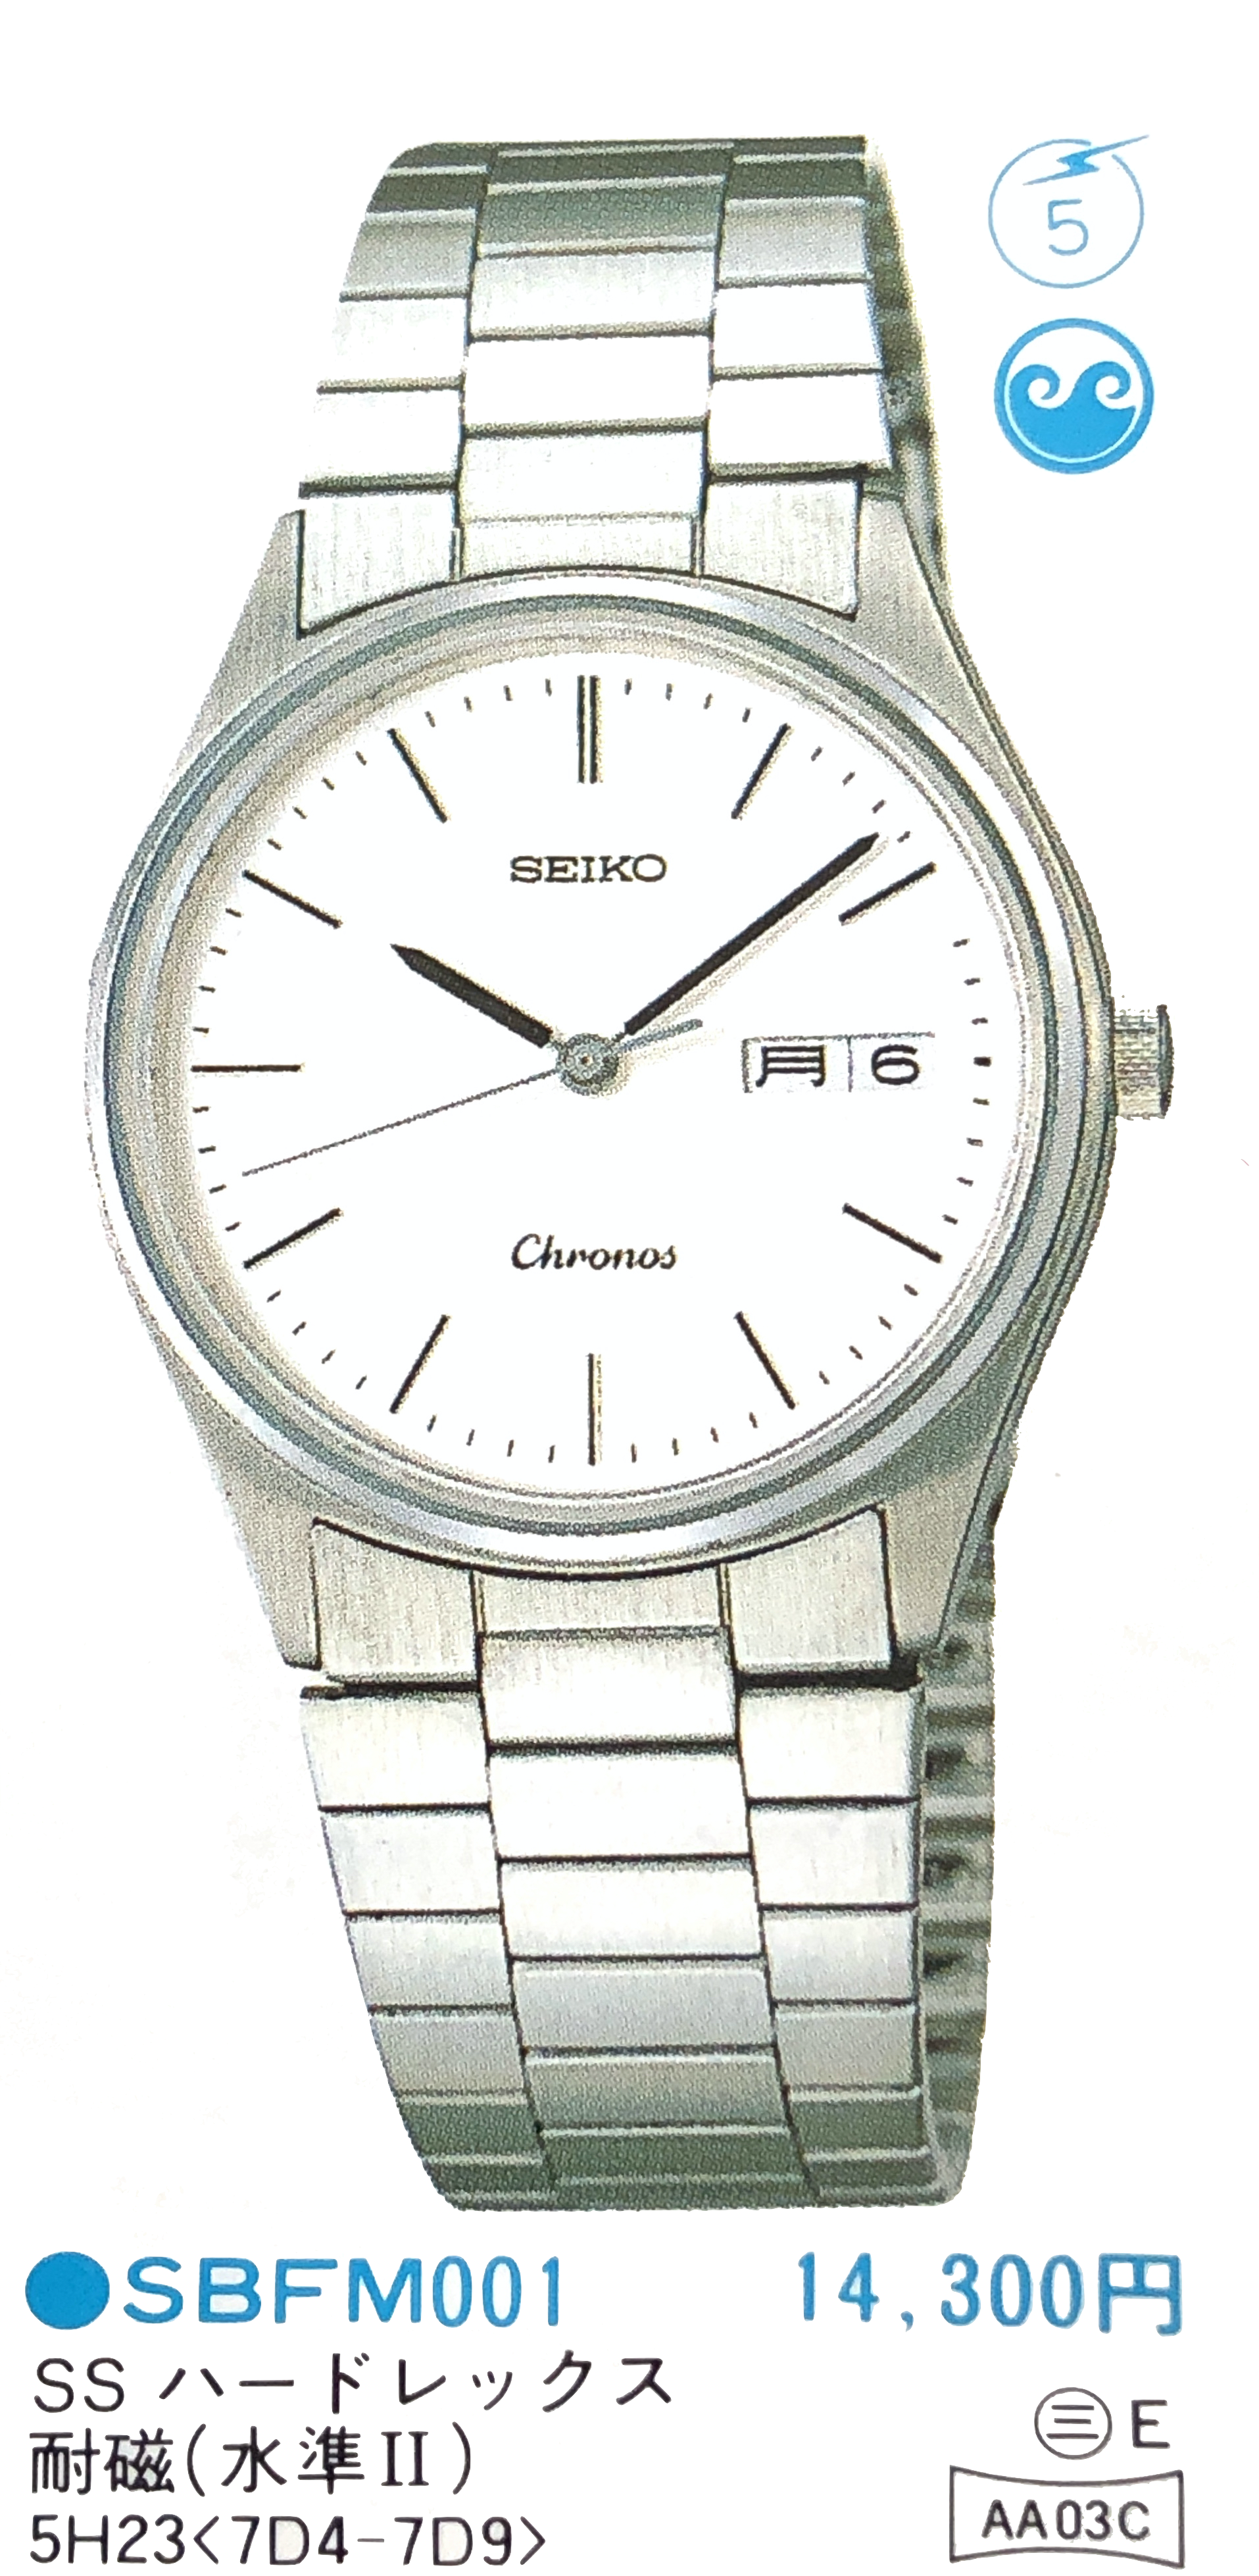 Seiko Chronos 5H23-7D40 SBFM001 NOS (For sale)